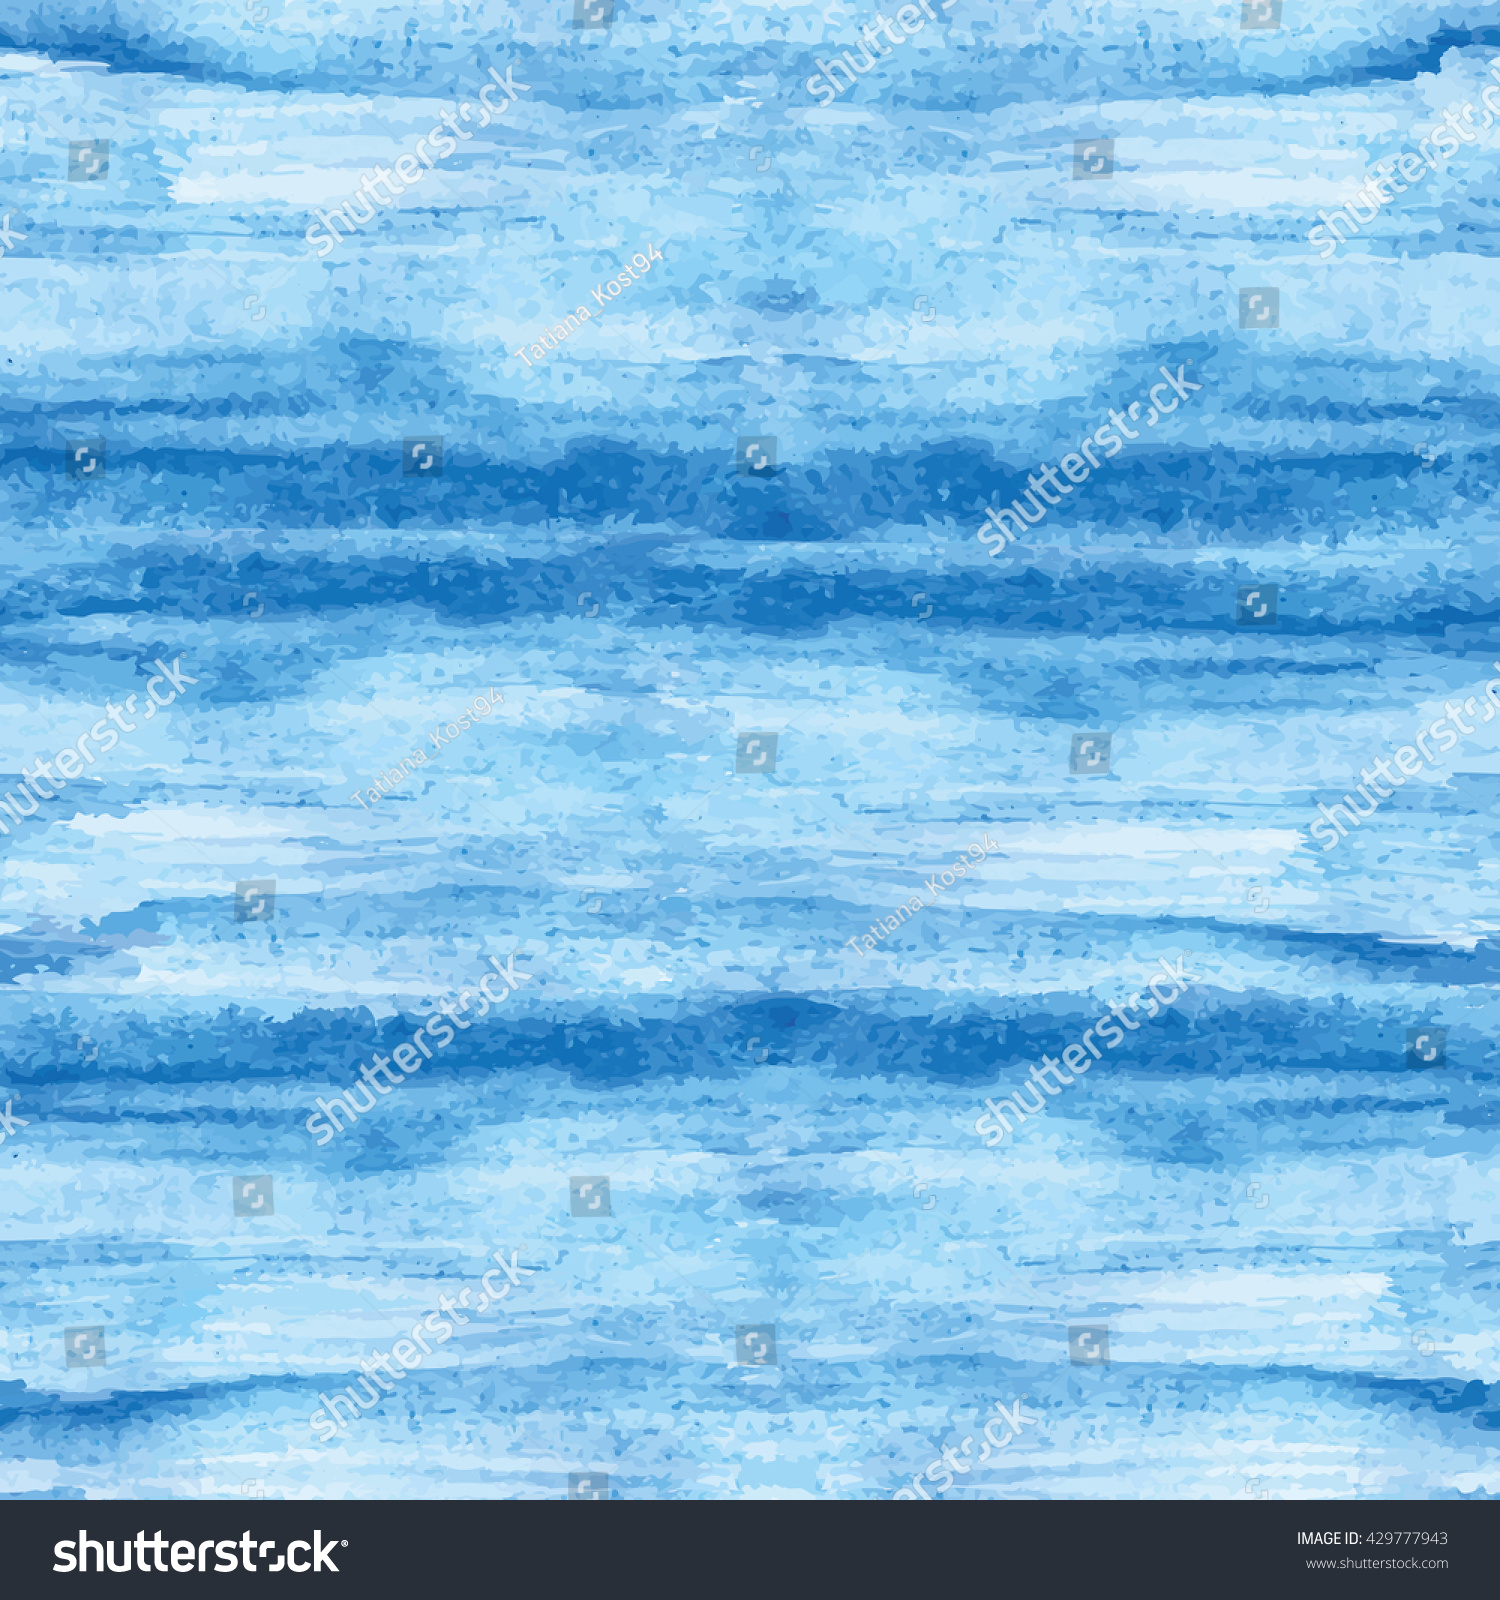 Top Wallpaper Marble Ocean - stock-vector-watercolor-blue-stain-seamless-pattern-vector-hand-painting-background-blue-wavy-ocean-sea-water-429777943  Best Photo Reference_751023.jpg